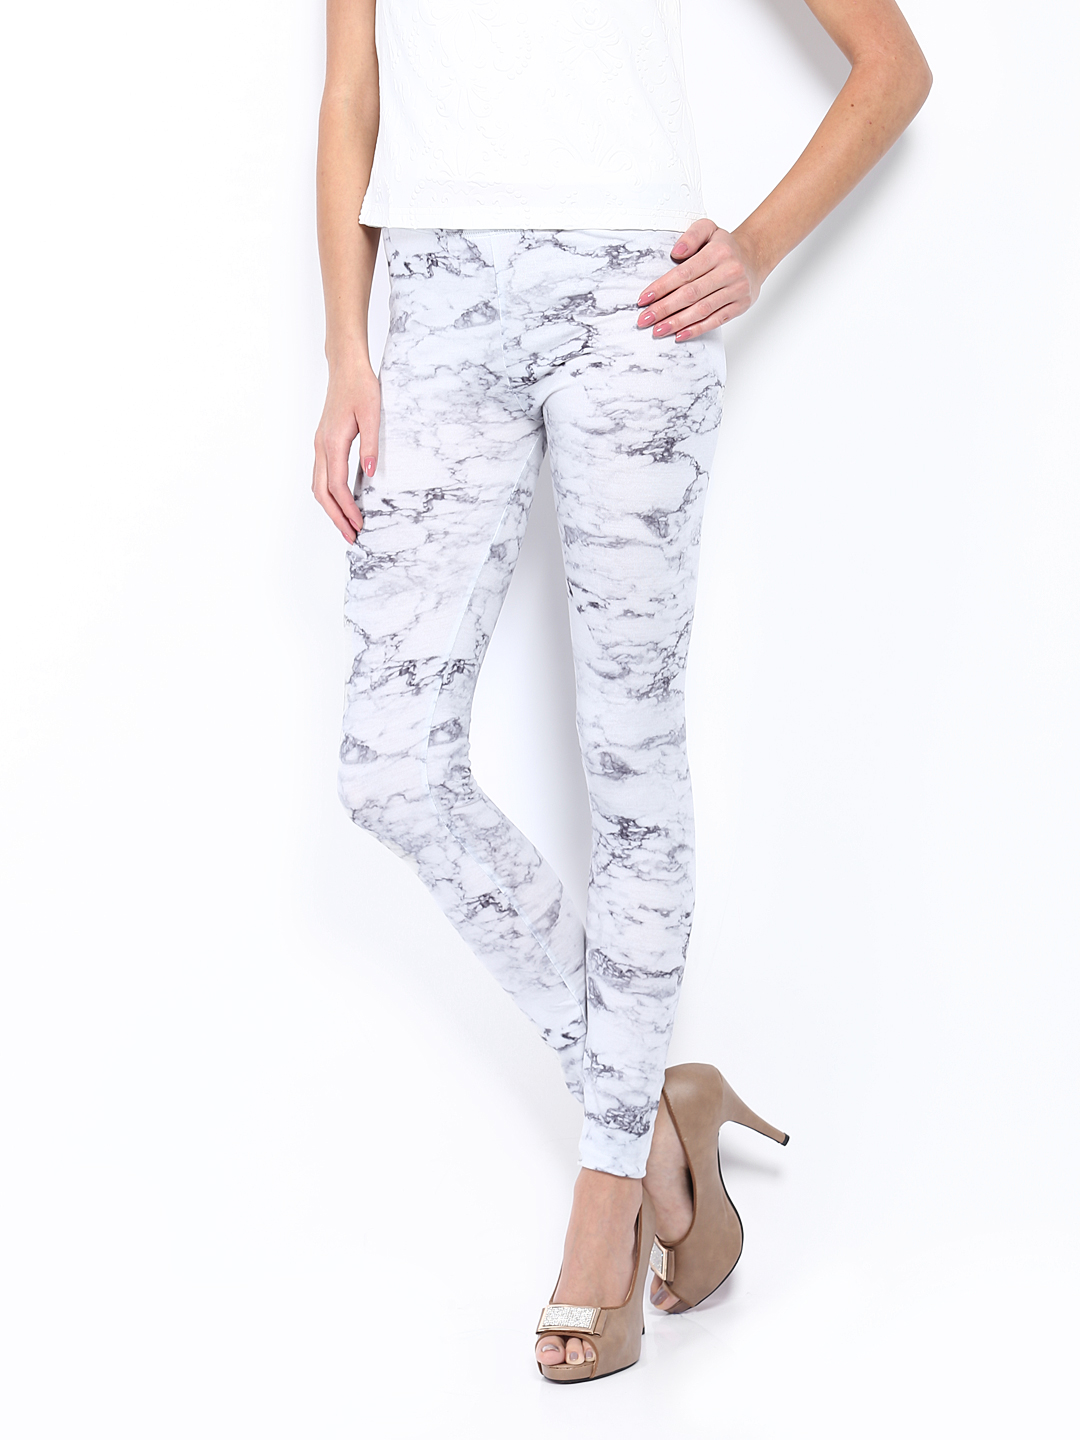 A Model wearing White Top and Vero Moda grey Printed Poly Stretch Leggings